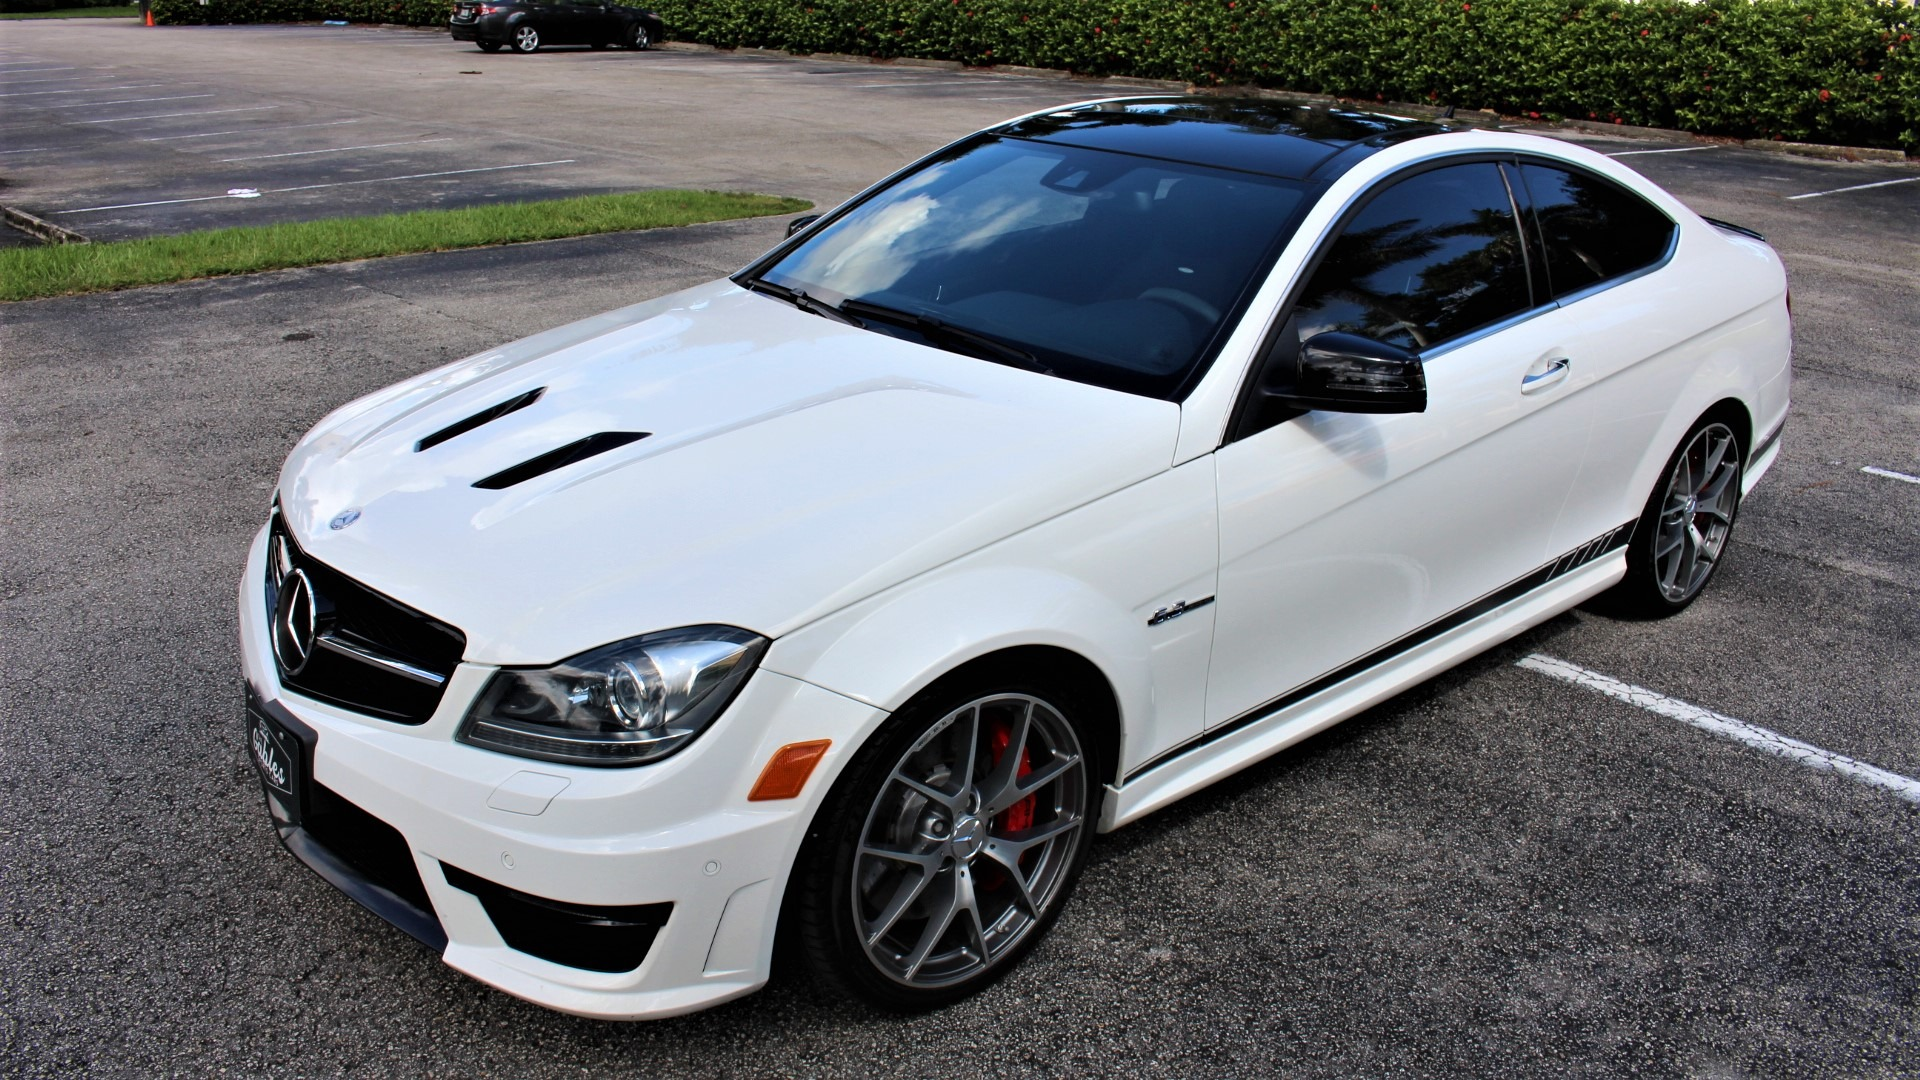 Used 2015 Mercedes-Benz C-Class C 63 AMG 507 Edition for sale $52,850 at The Gables Sports Cars in Miami FL 33146 4